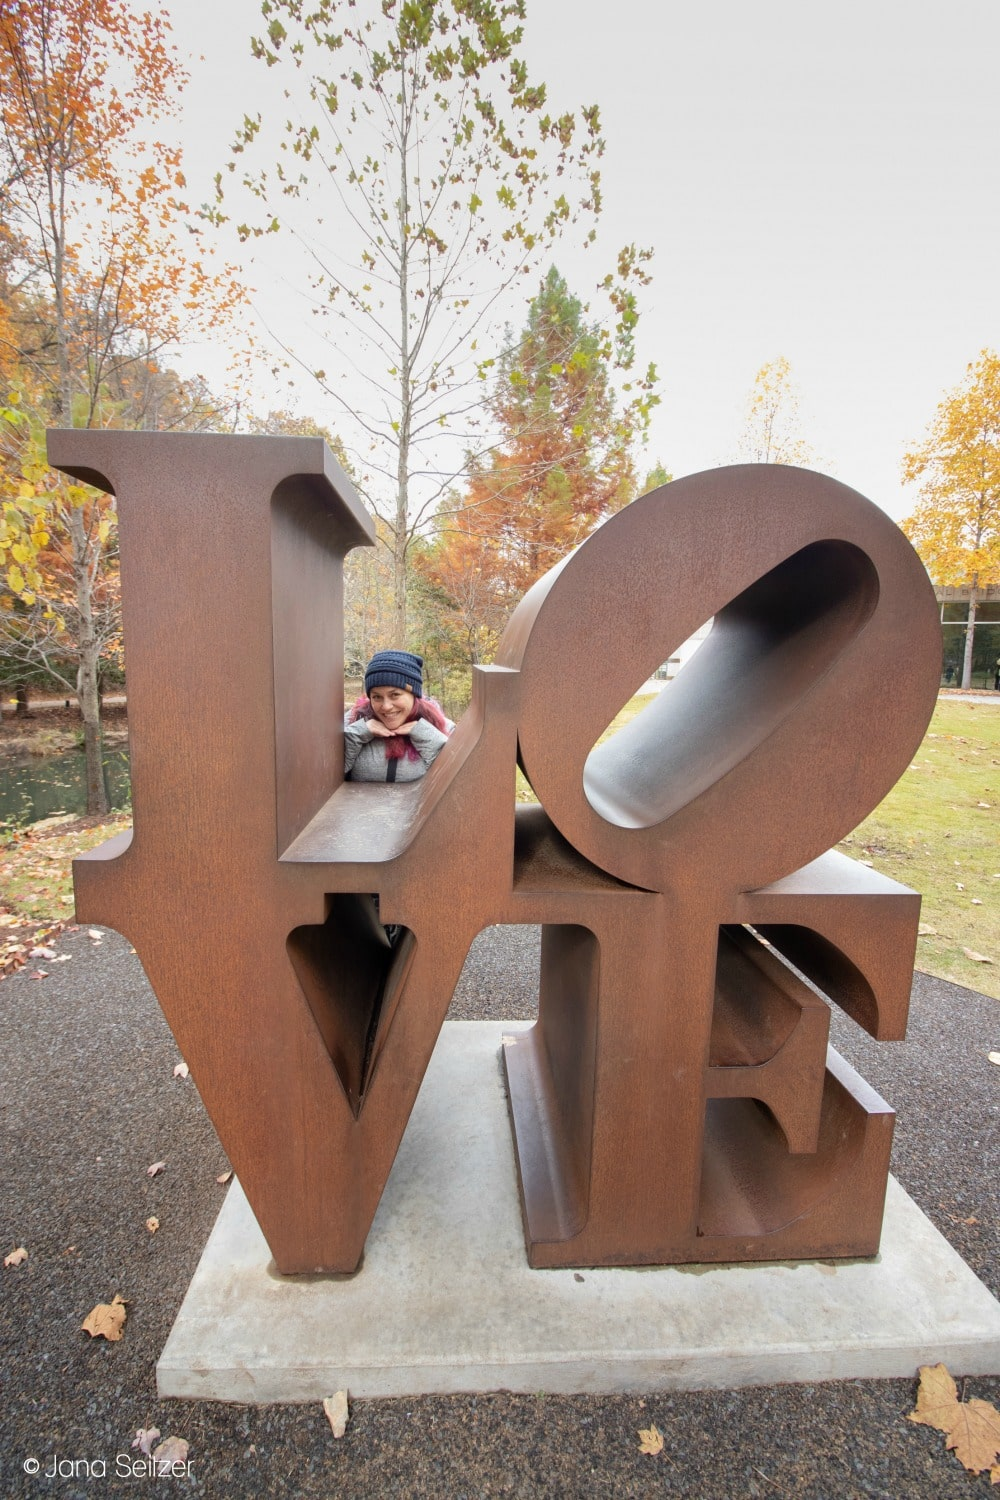 Art in Bentonville, Arkansas - Crystal Bridges Museum